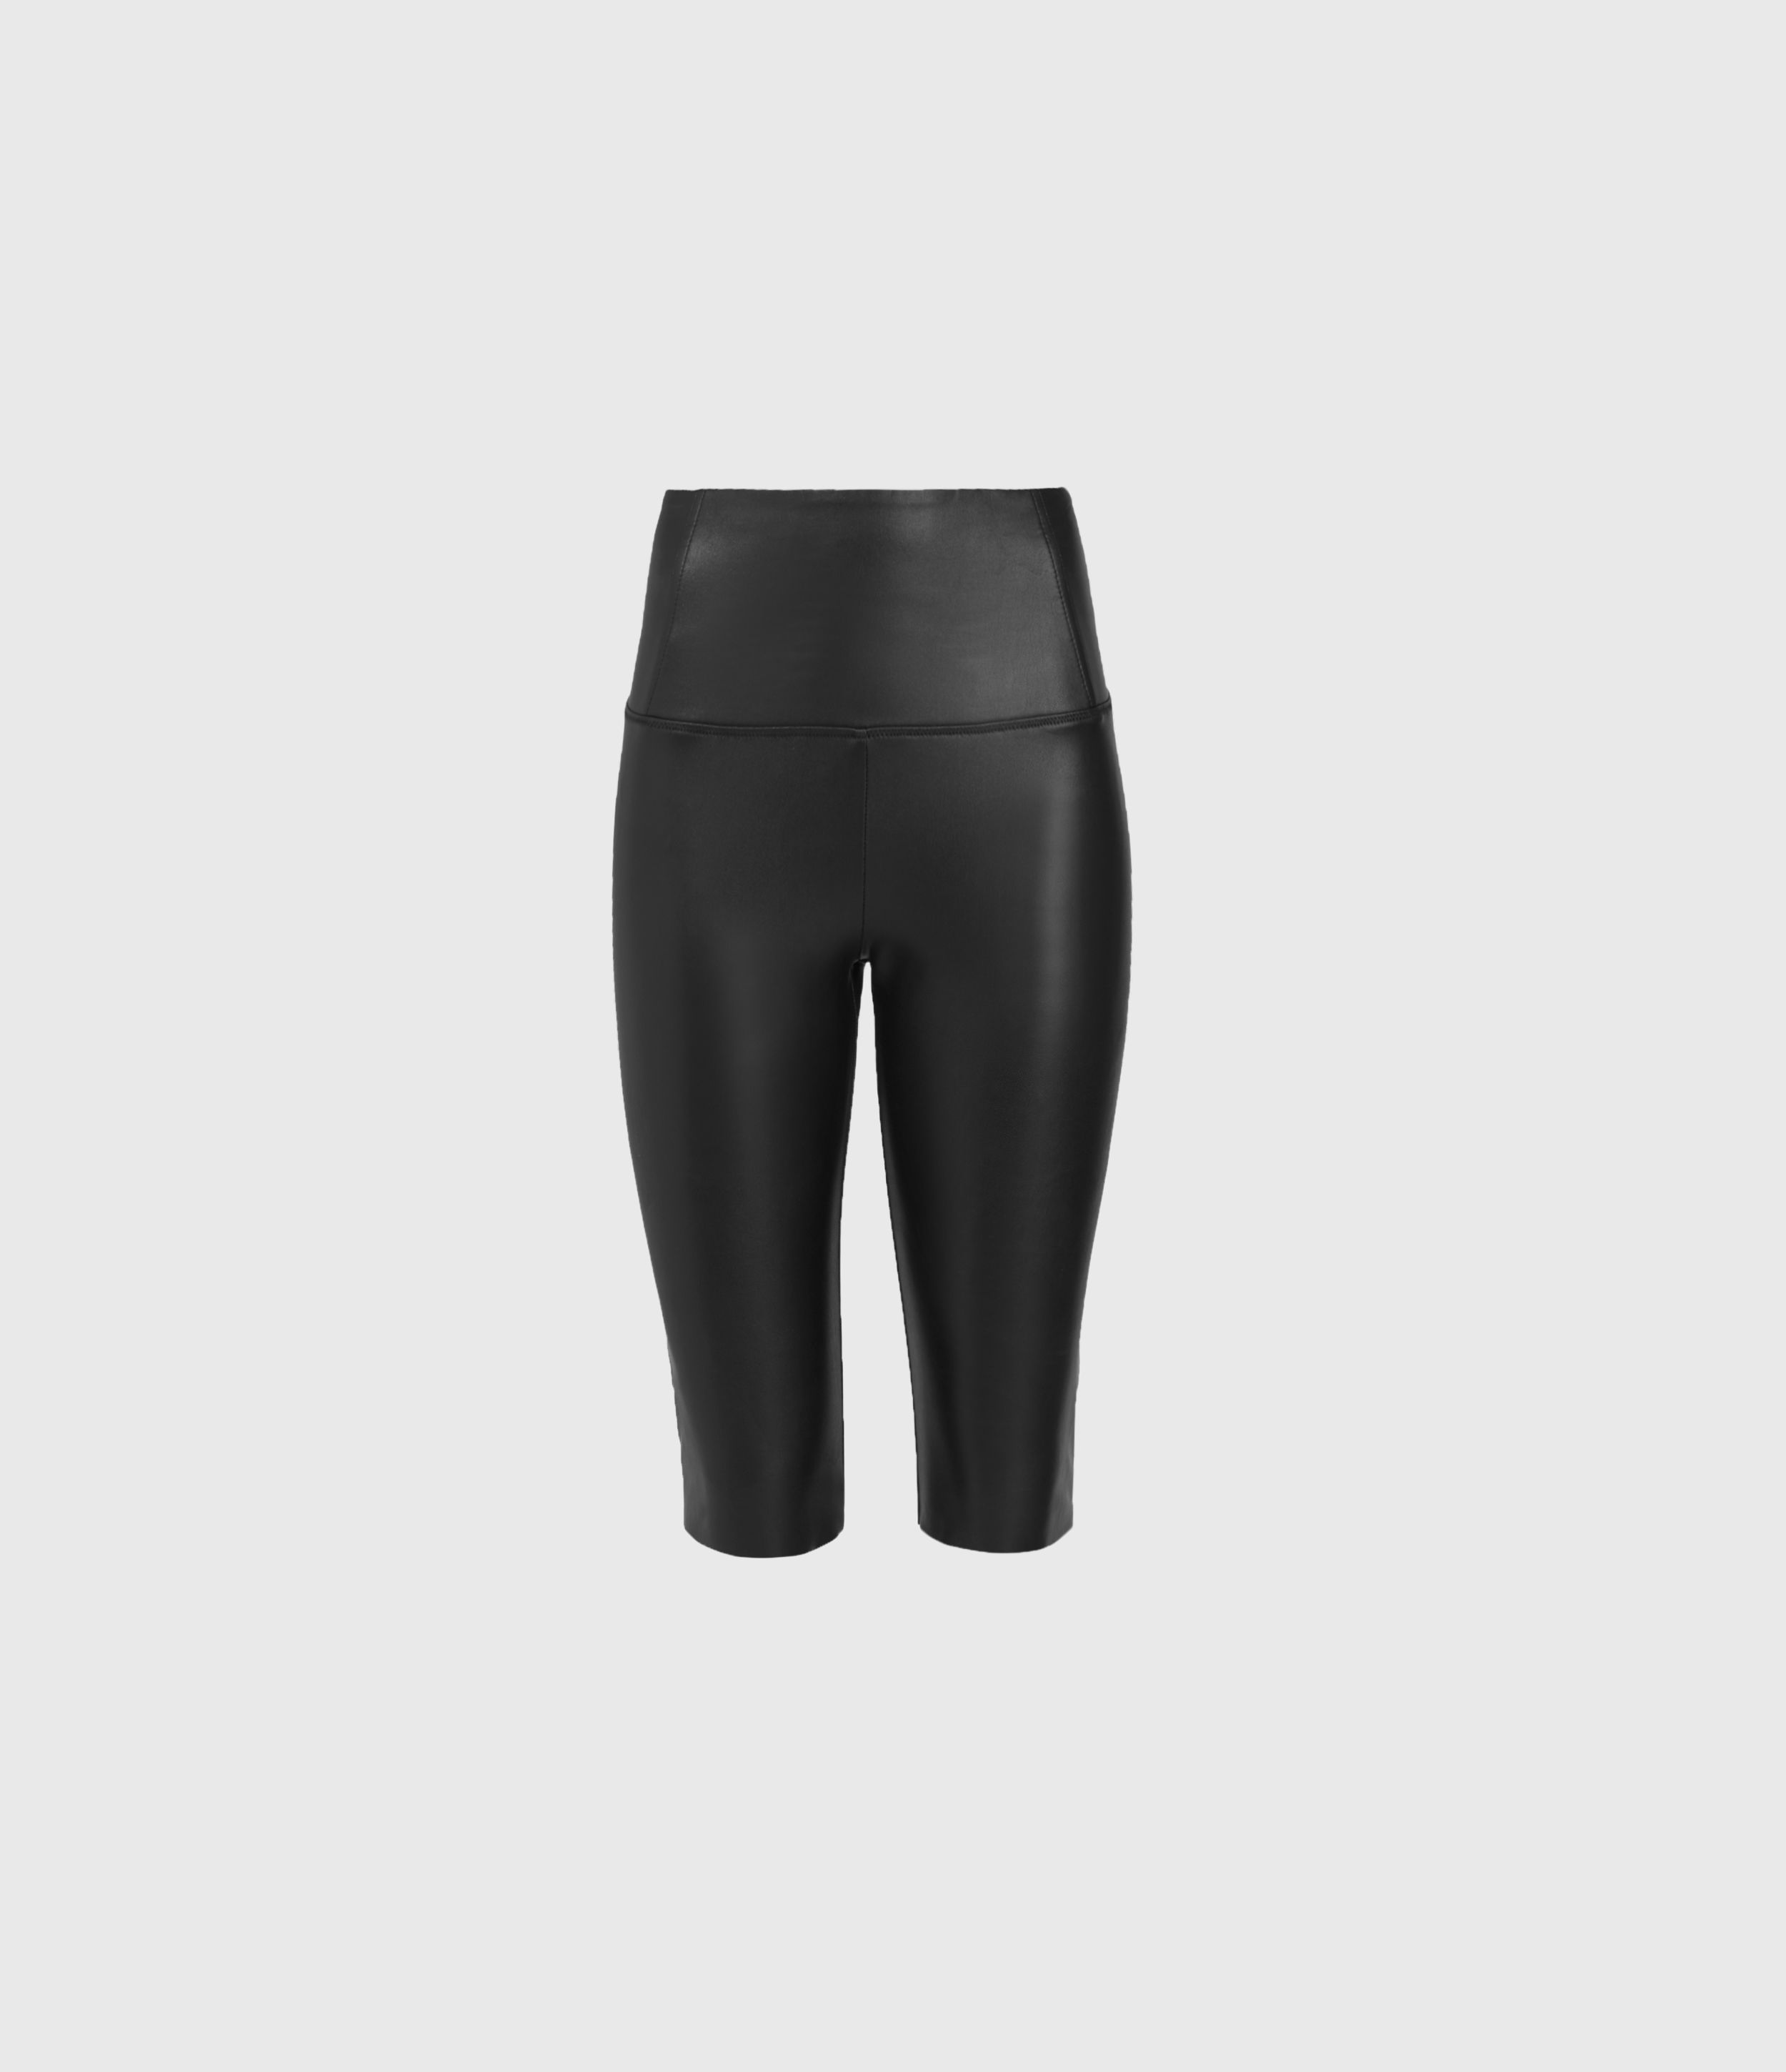 AllSaints Cora Cycling Shorts